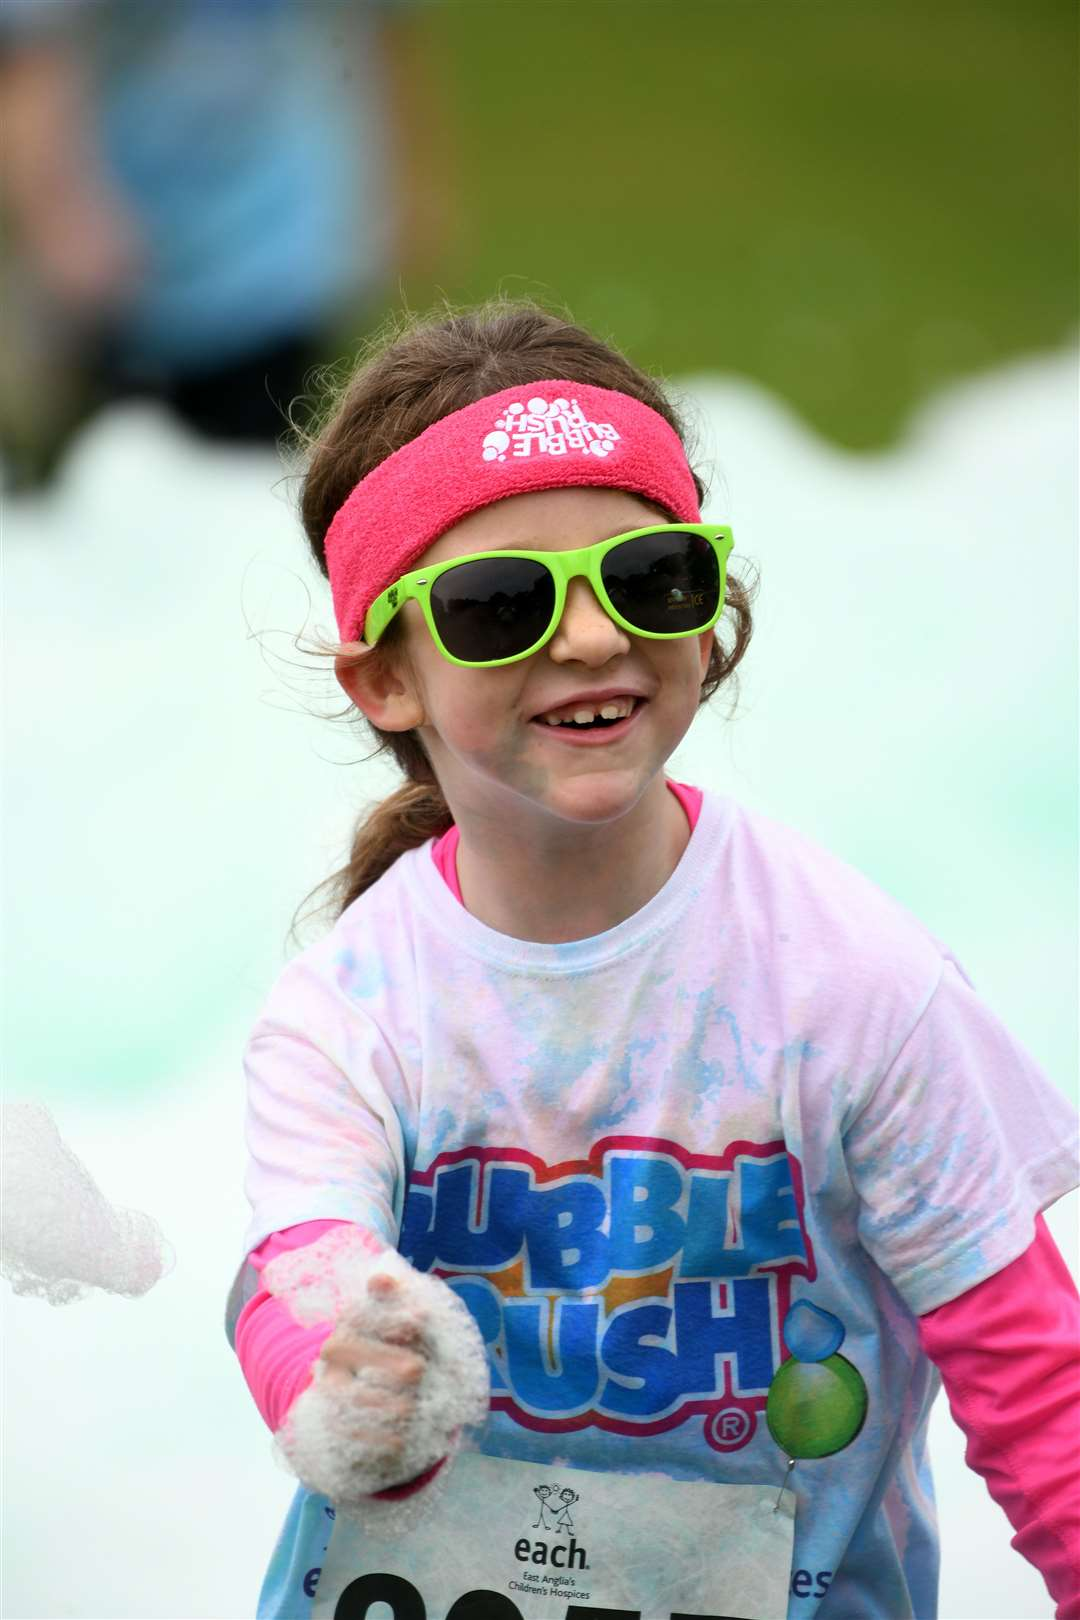 Bubble Rush at The Walks in Kings Lynn. MLNF-21AF09602